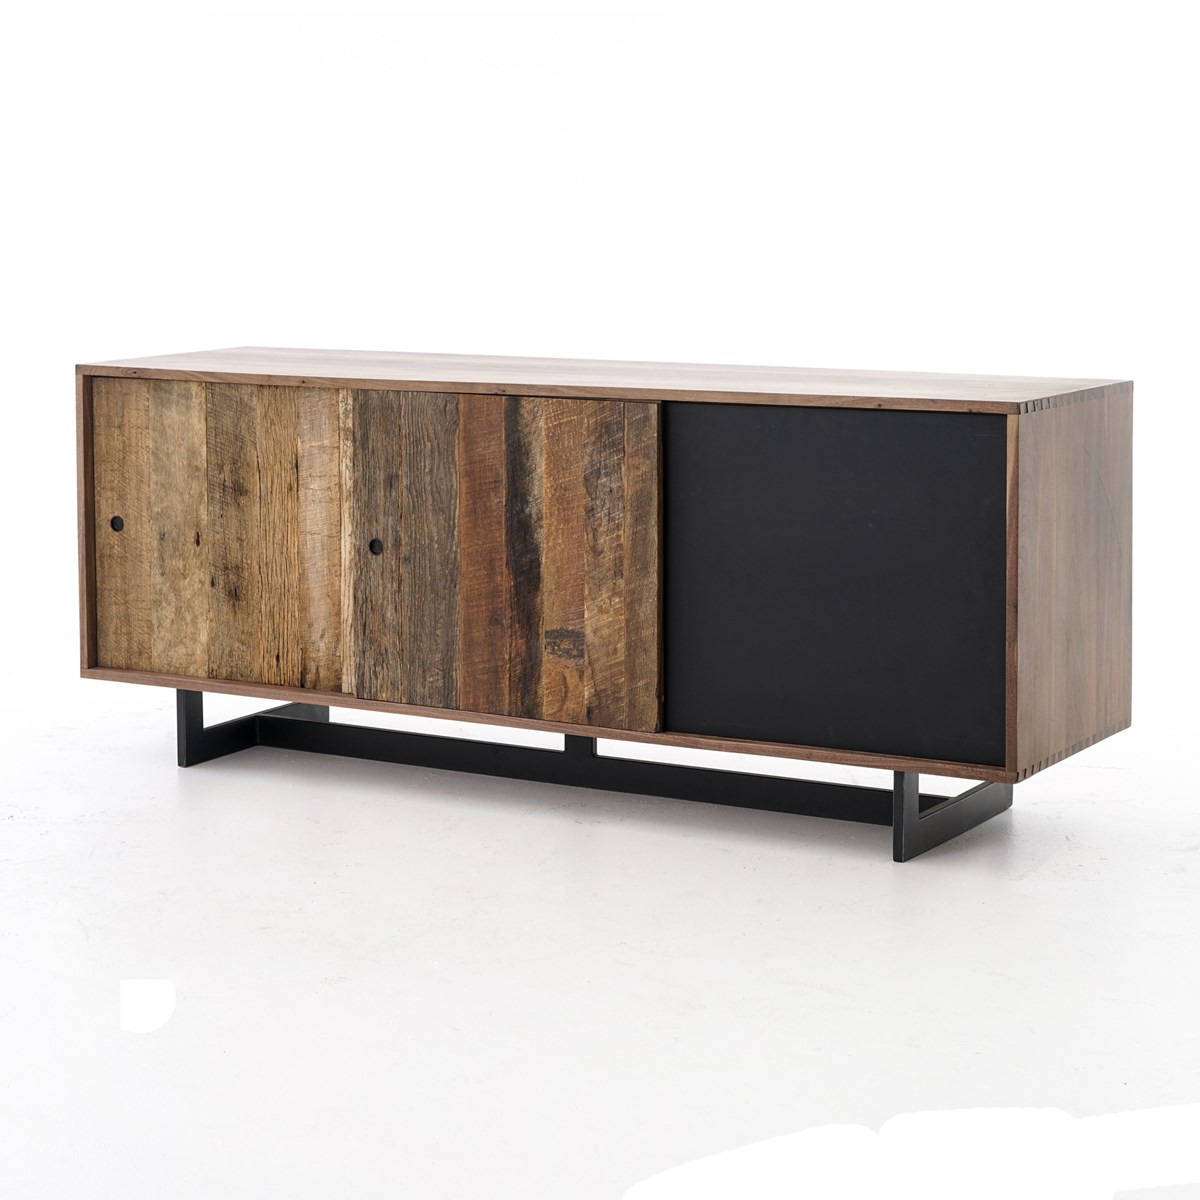 Image gallery oak tv media cabinets for Tv media storage cabinet